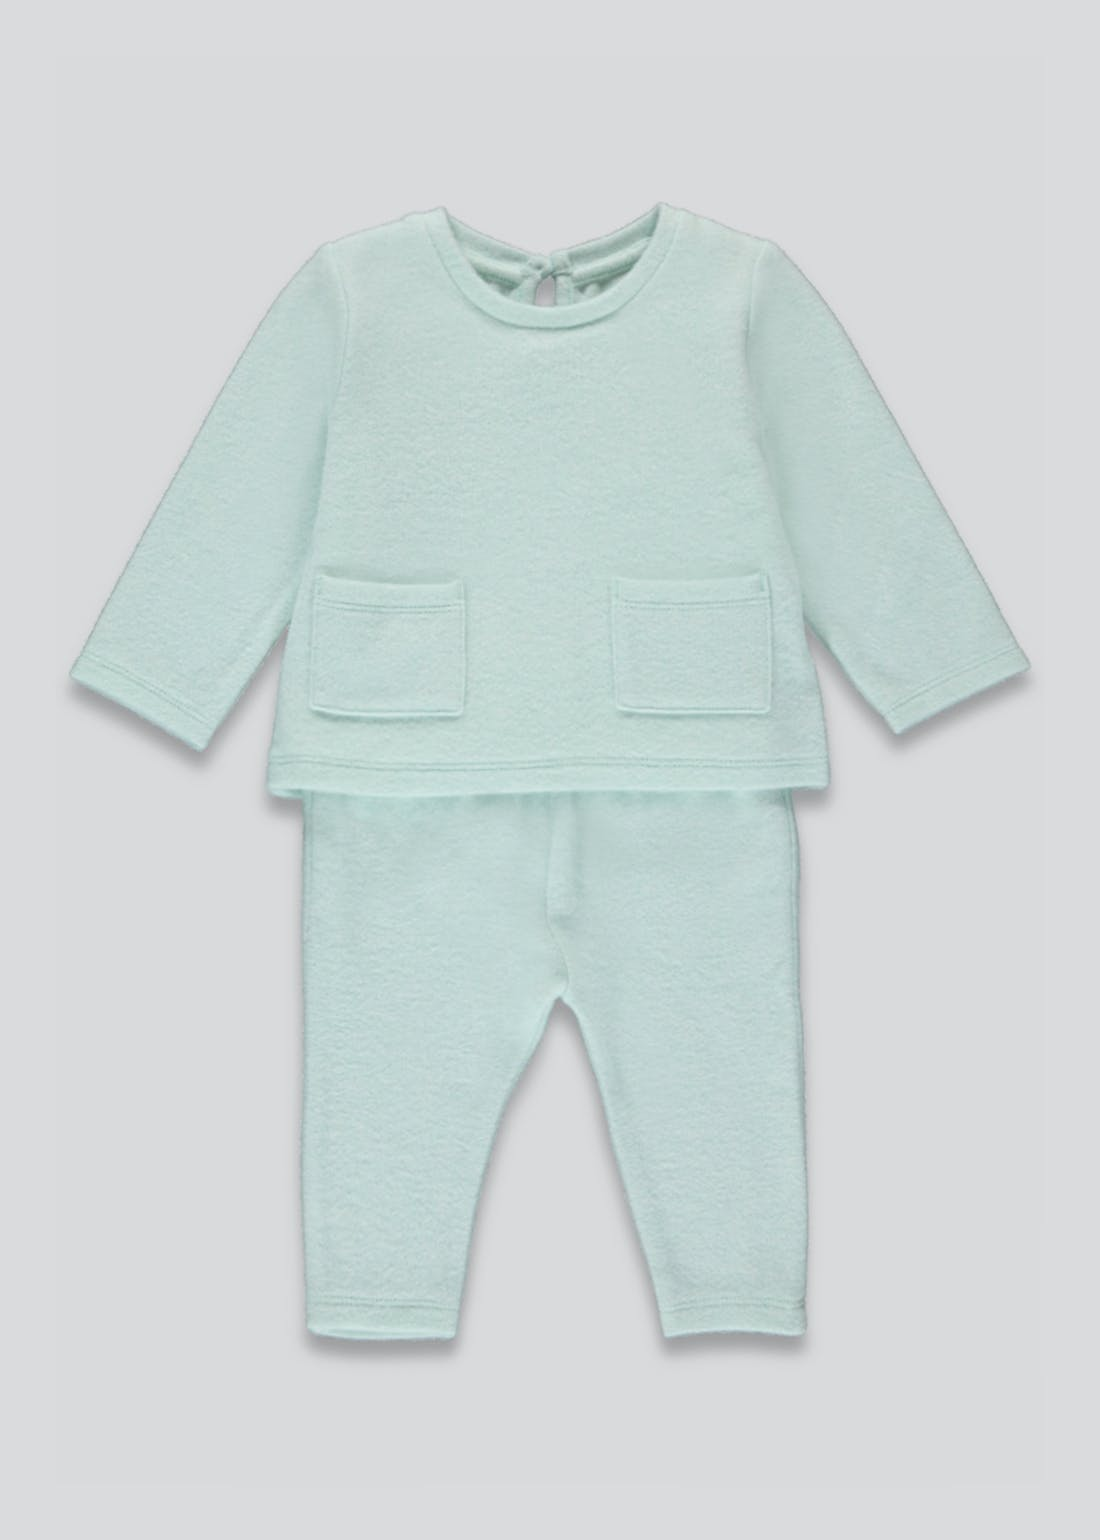 Unisex Knitted 2 Piece Set (Tiny Baby-23mths)